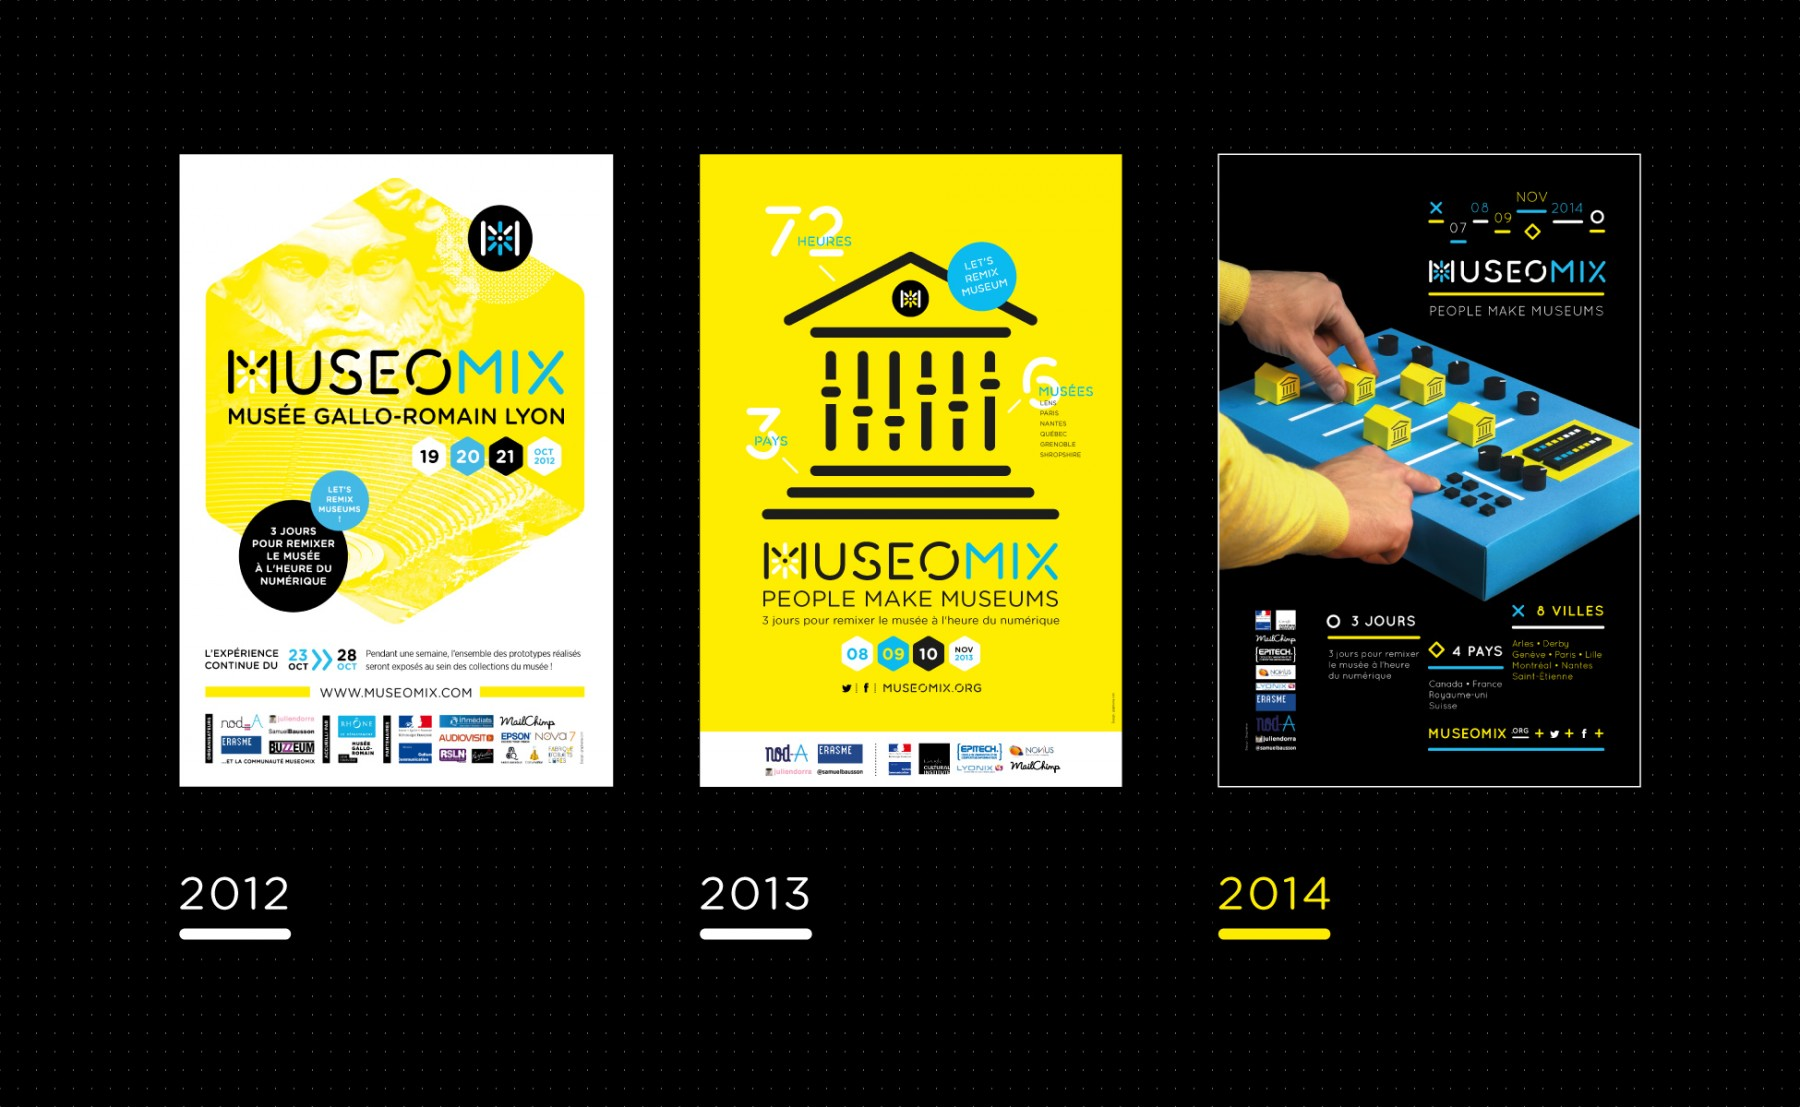 Poster design 2014 - 3 Posters Museomix